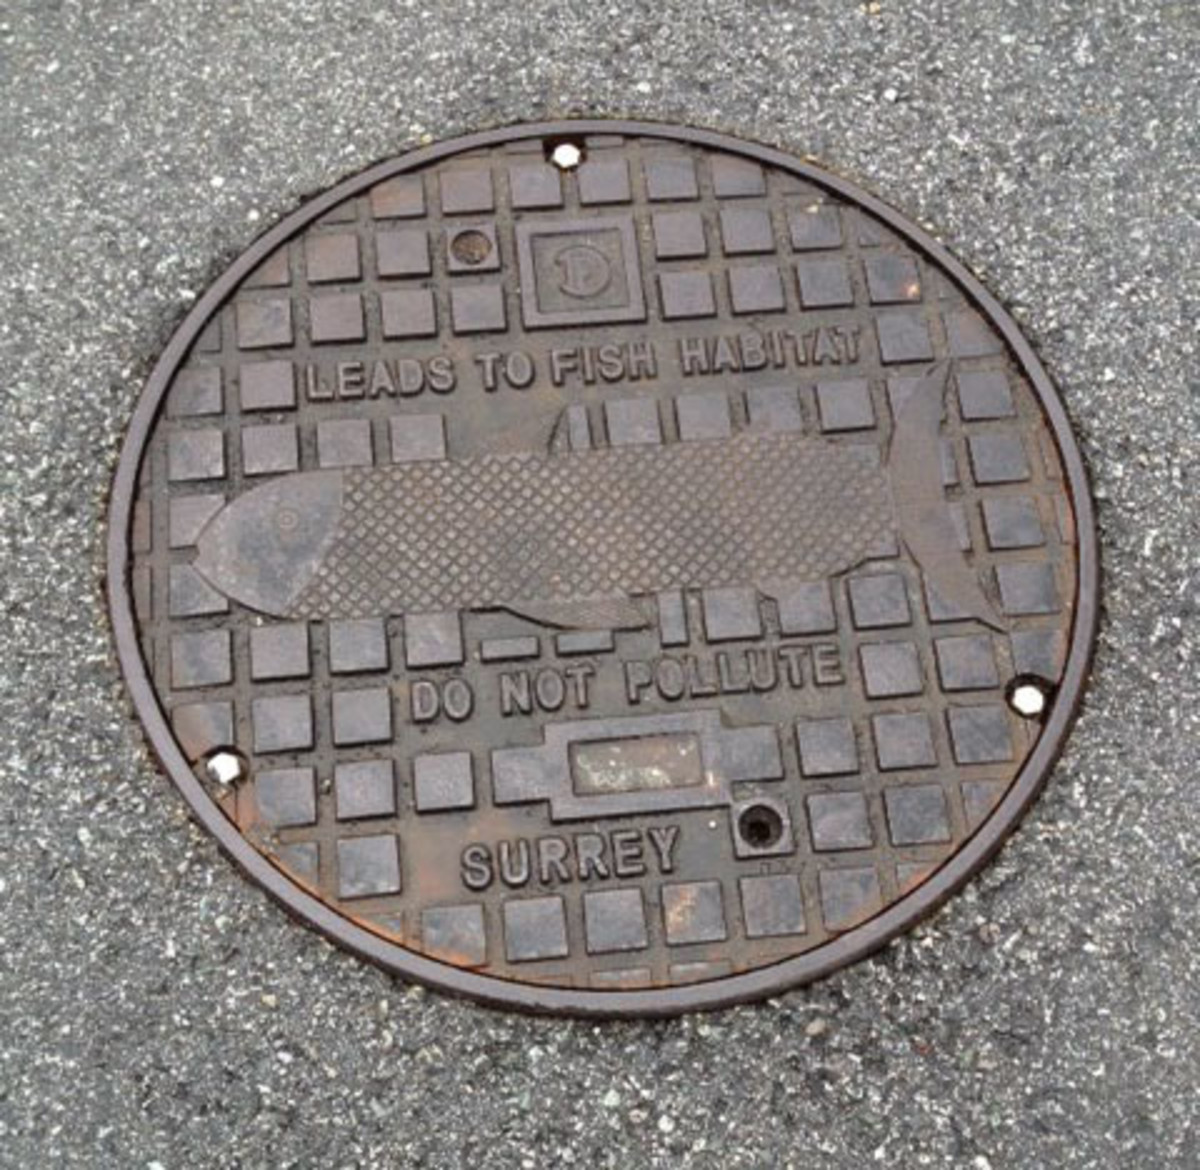 Did you know that almost every town or city has a different design on the manhole covers that's unique to them. This is from Surrey, BC where I actually have lived for a couple of years.